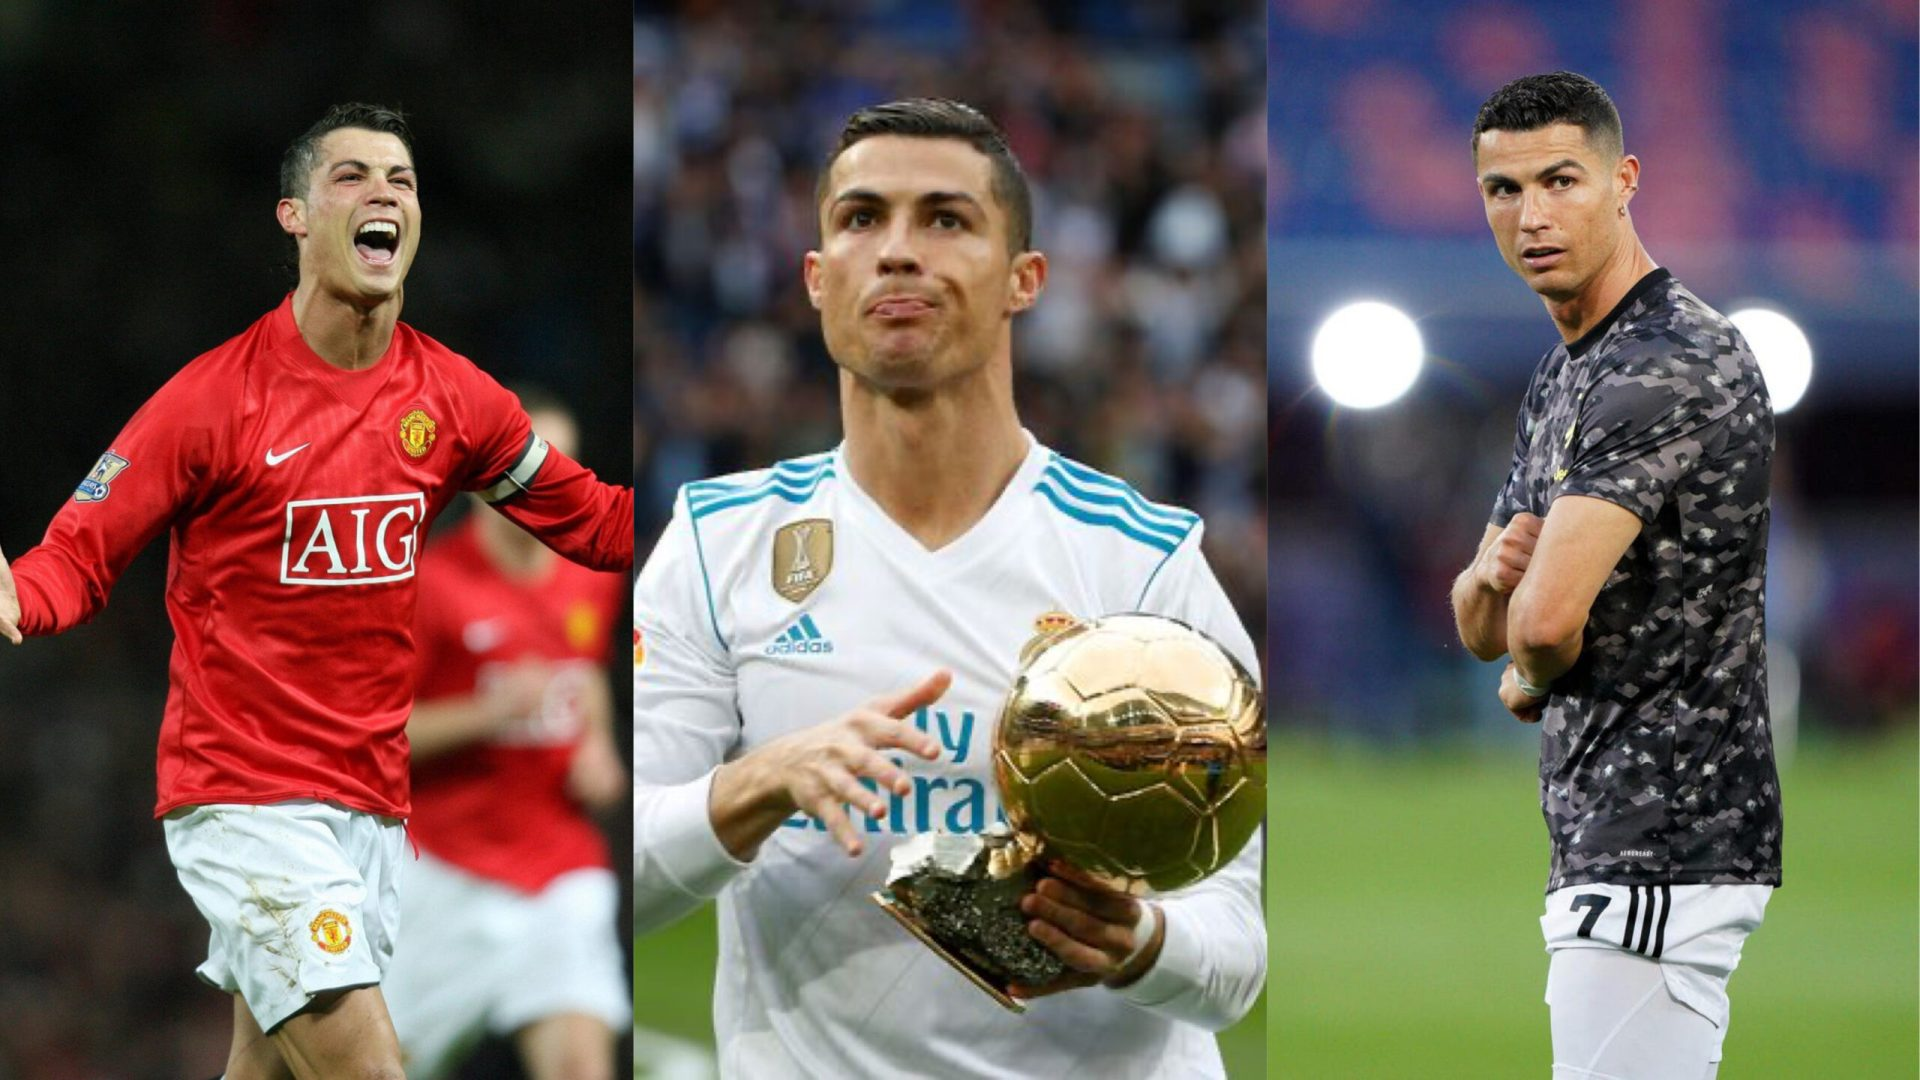 Check Out The Over 50 Unbreakable World Records Set By Cristiano Ronaldo